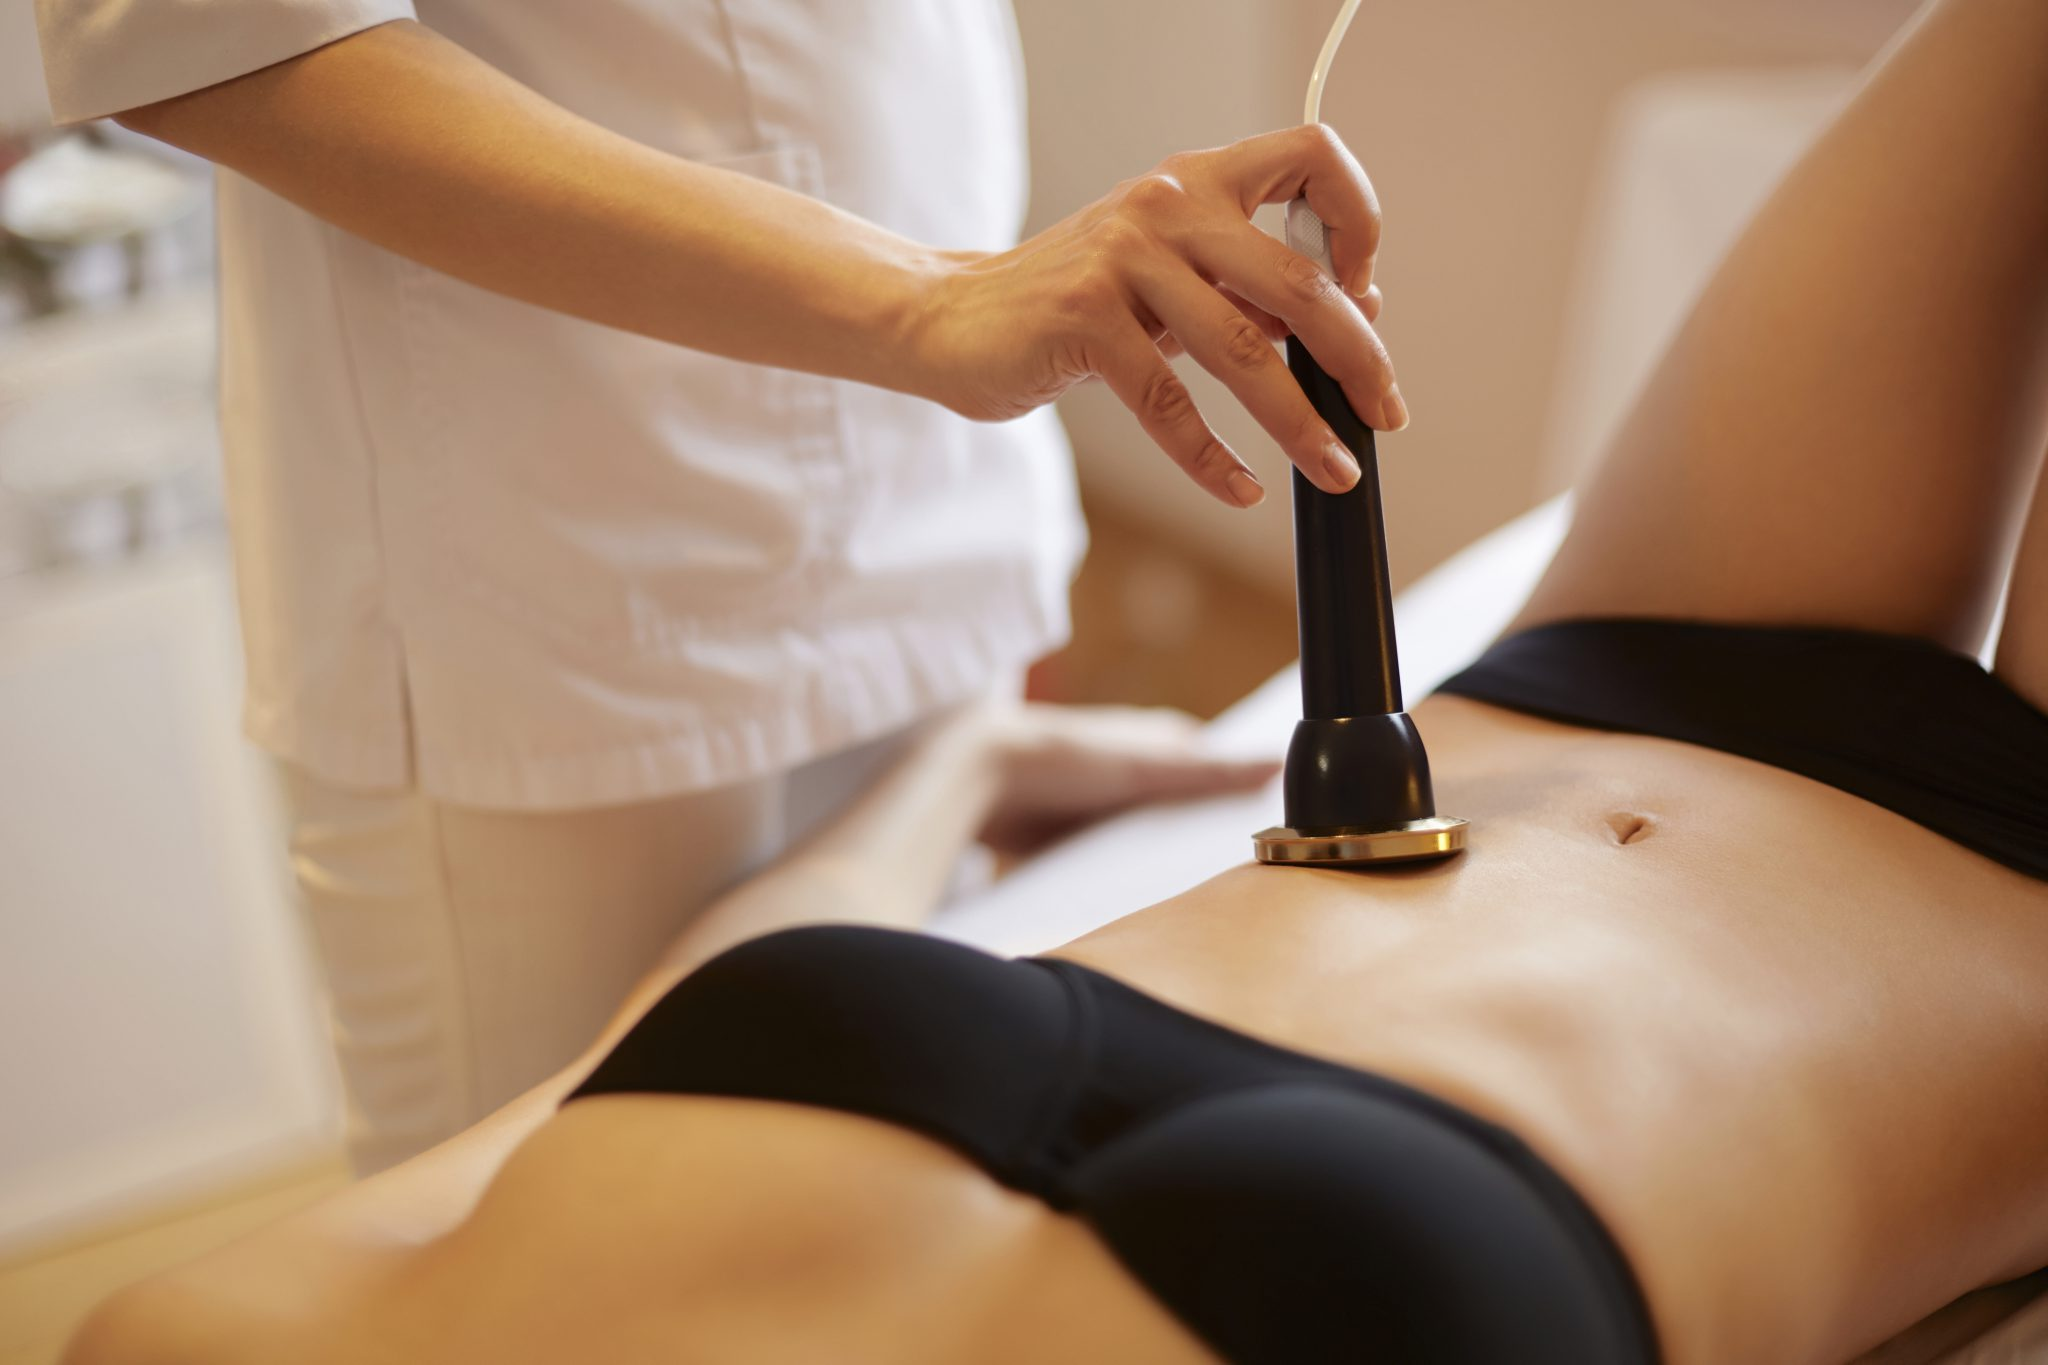 Different Types Of Lipo Surgeries You Need To Know About